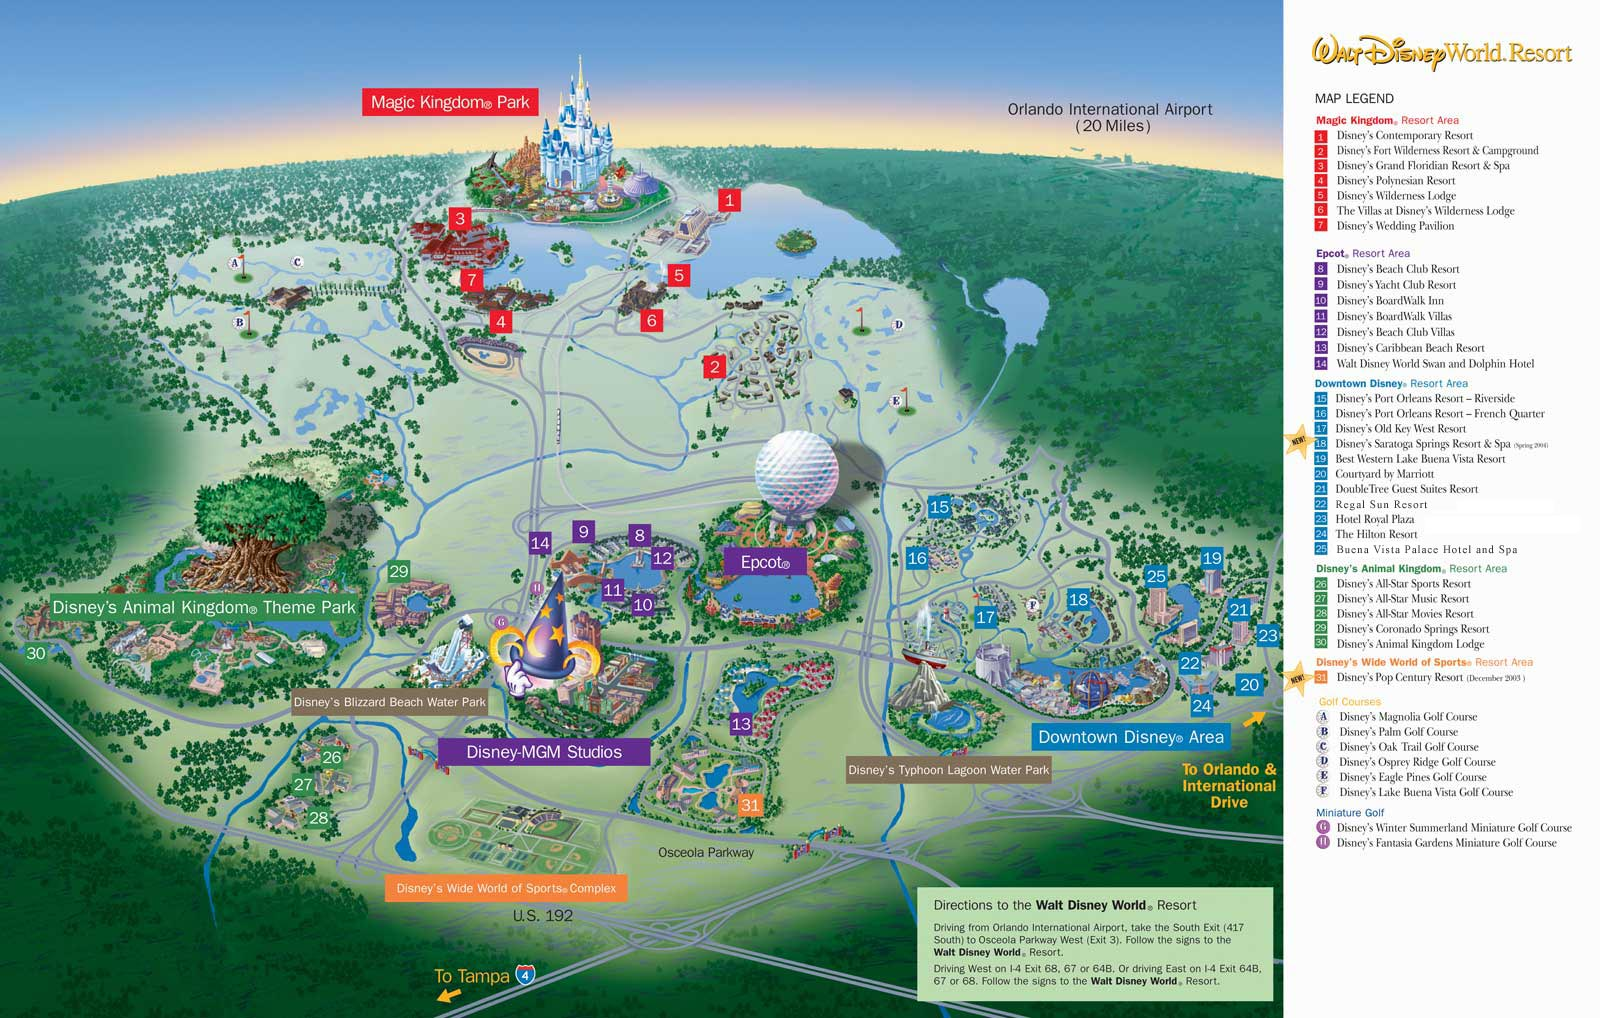 Disney Park Maps Map of Walt Disney World Resort   wdwinfo.com